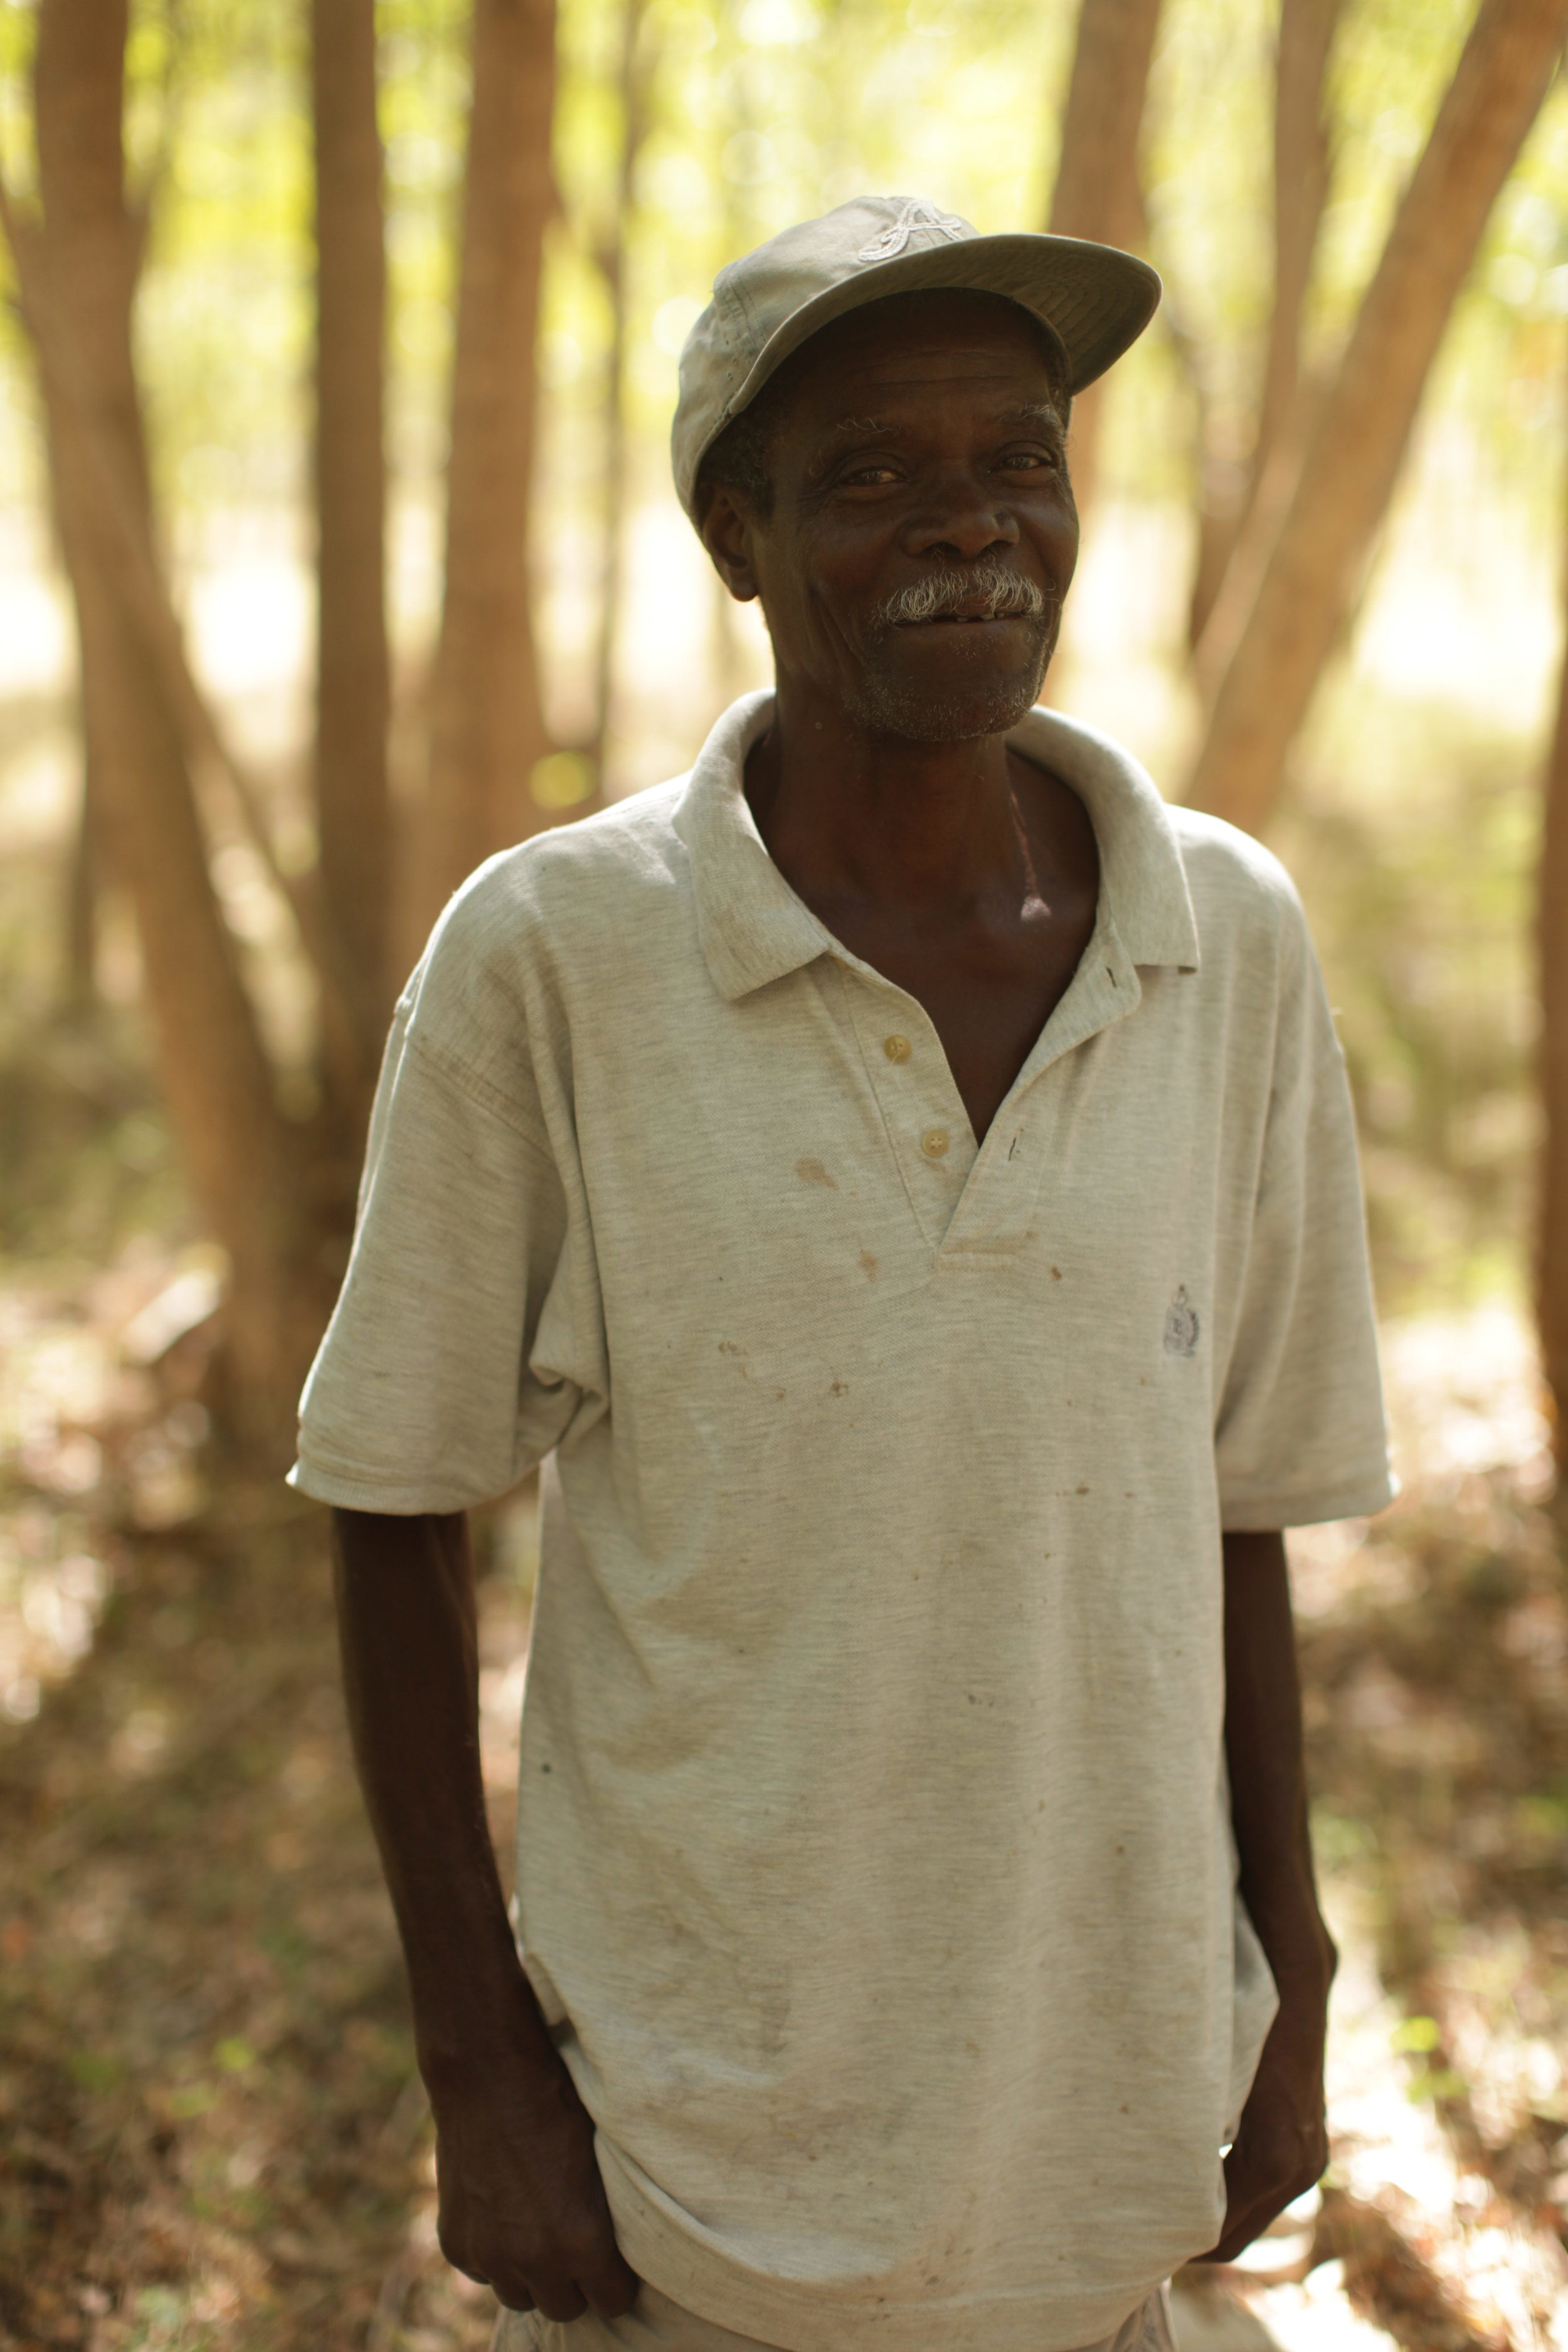 MCC subsidized 140 micro forests for tree farmers like Ulrick Elismar who grow a variety of quick growing trees on half a hectare of land. The farmers agree to not harvest for 5 years, after which the forest will mature to allow sustainable harvesting. Each farmer is expected to make about 20,000 Gourde (about $500 USD) per year.